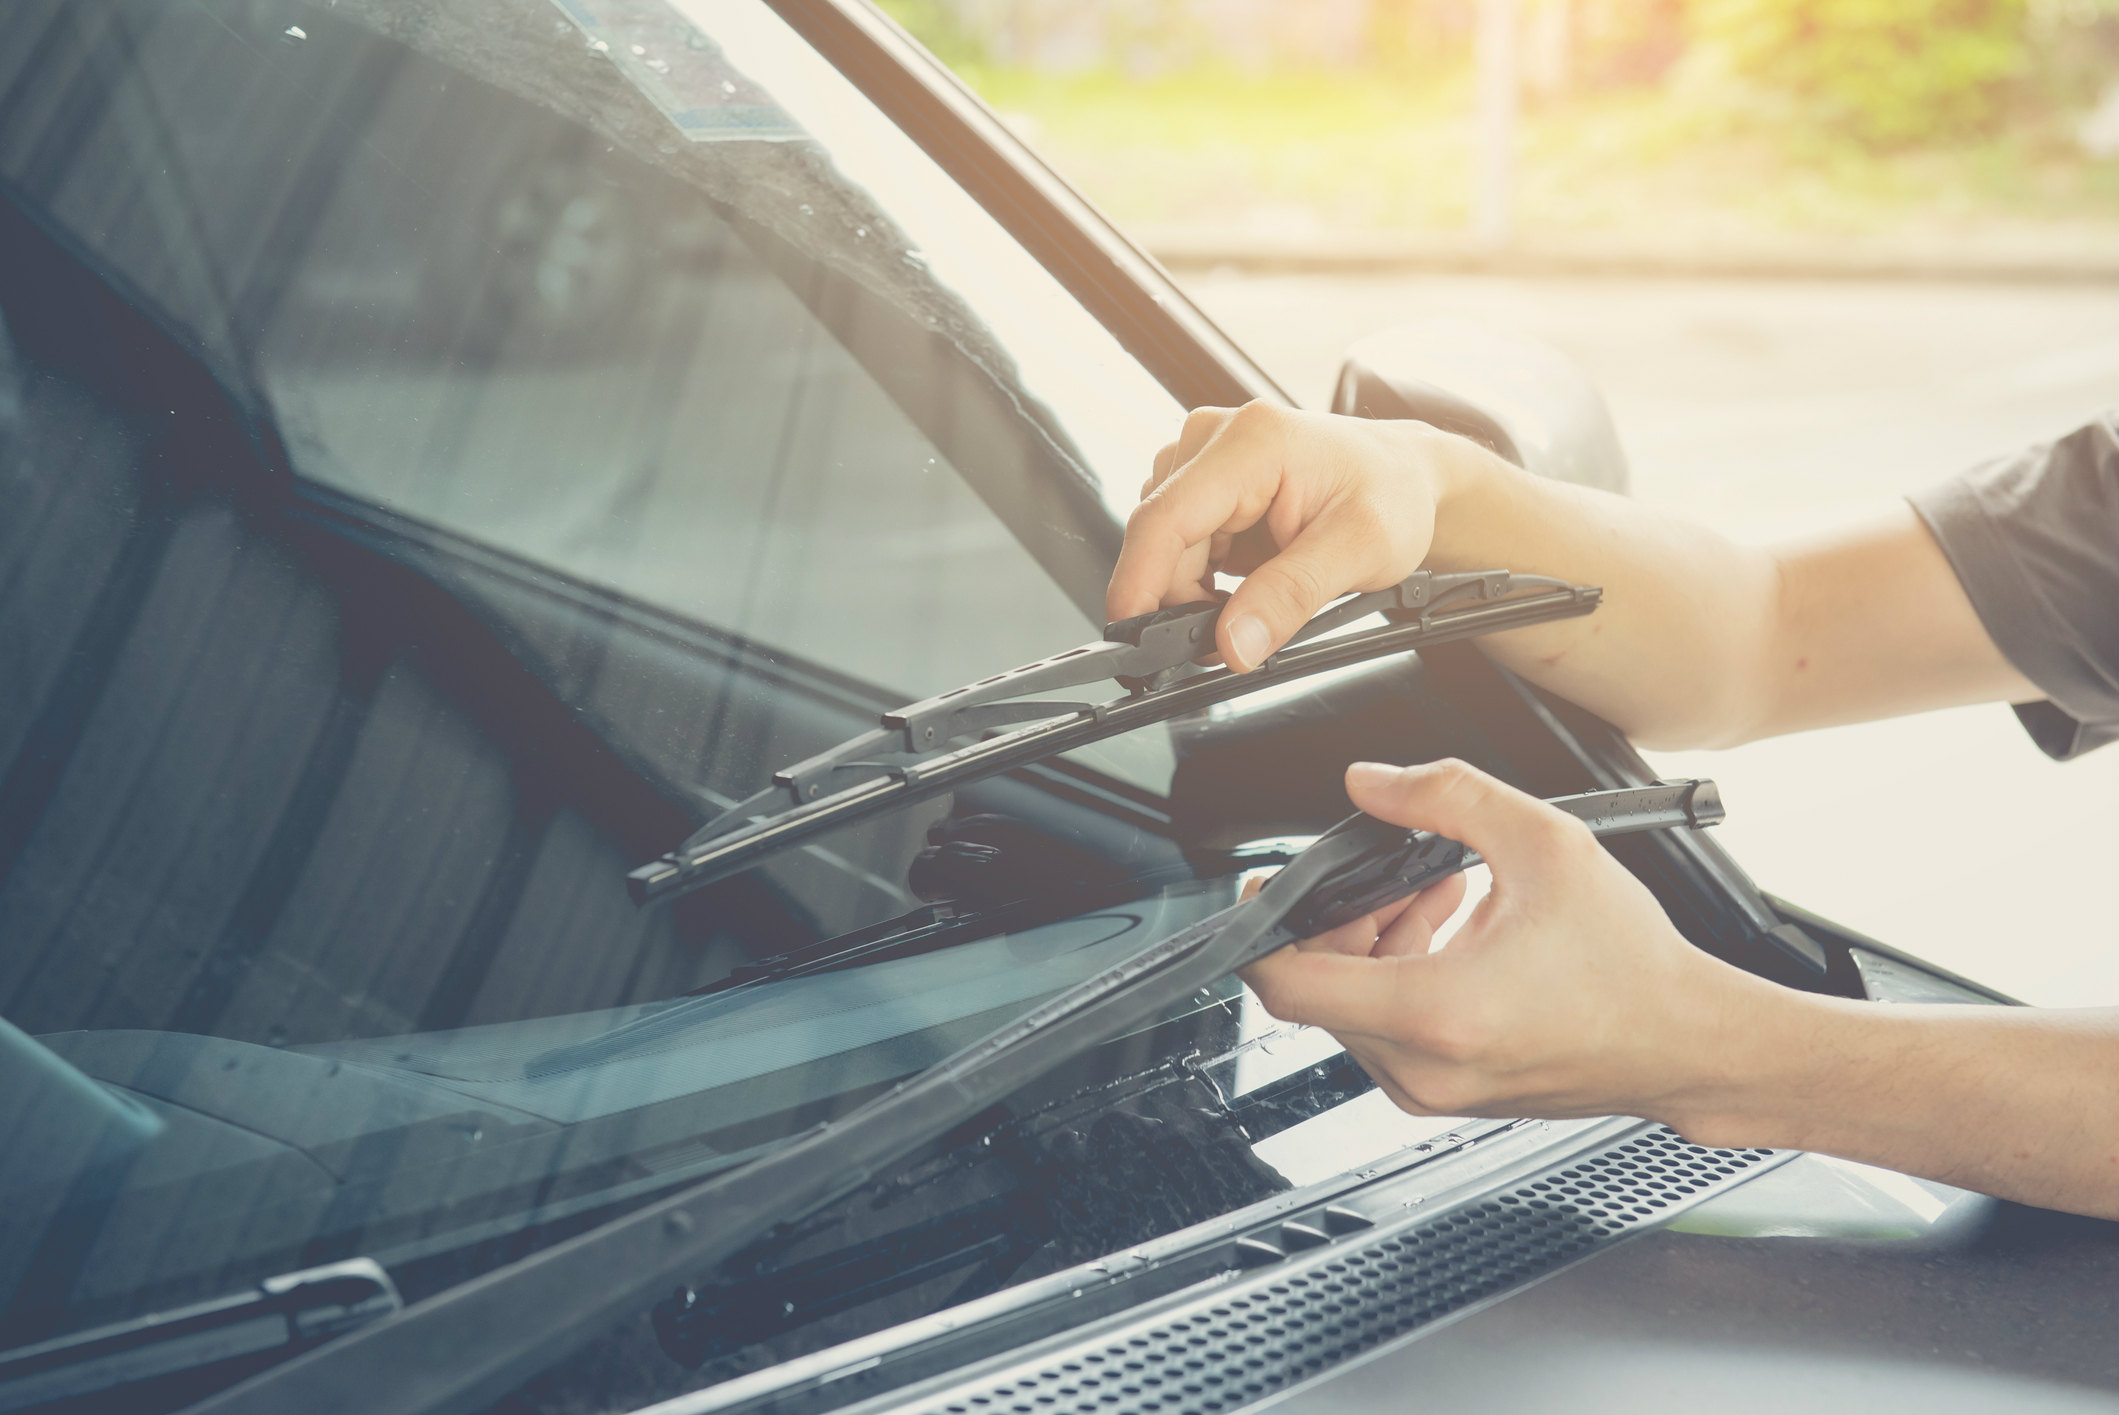 How do you know if windscreen wipers need replacing?